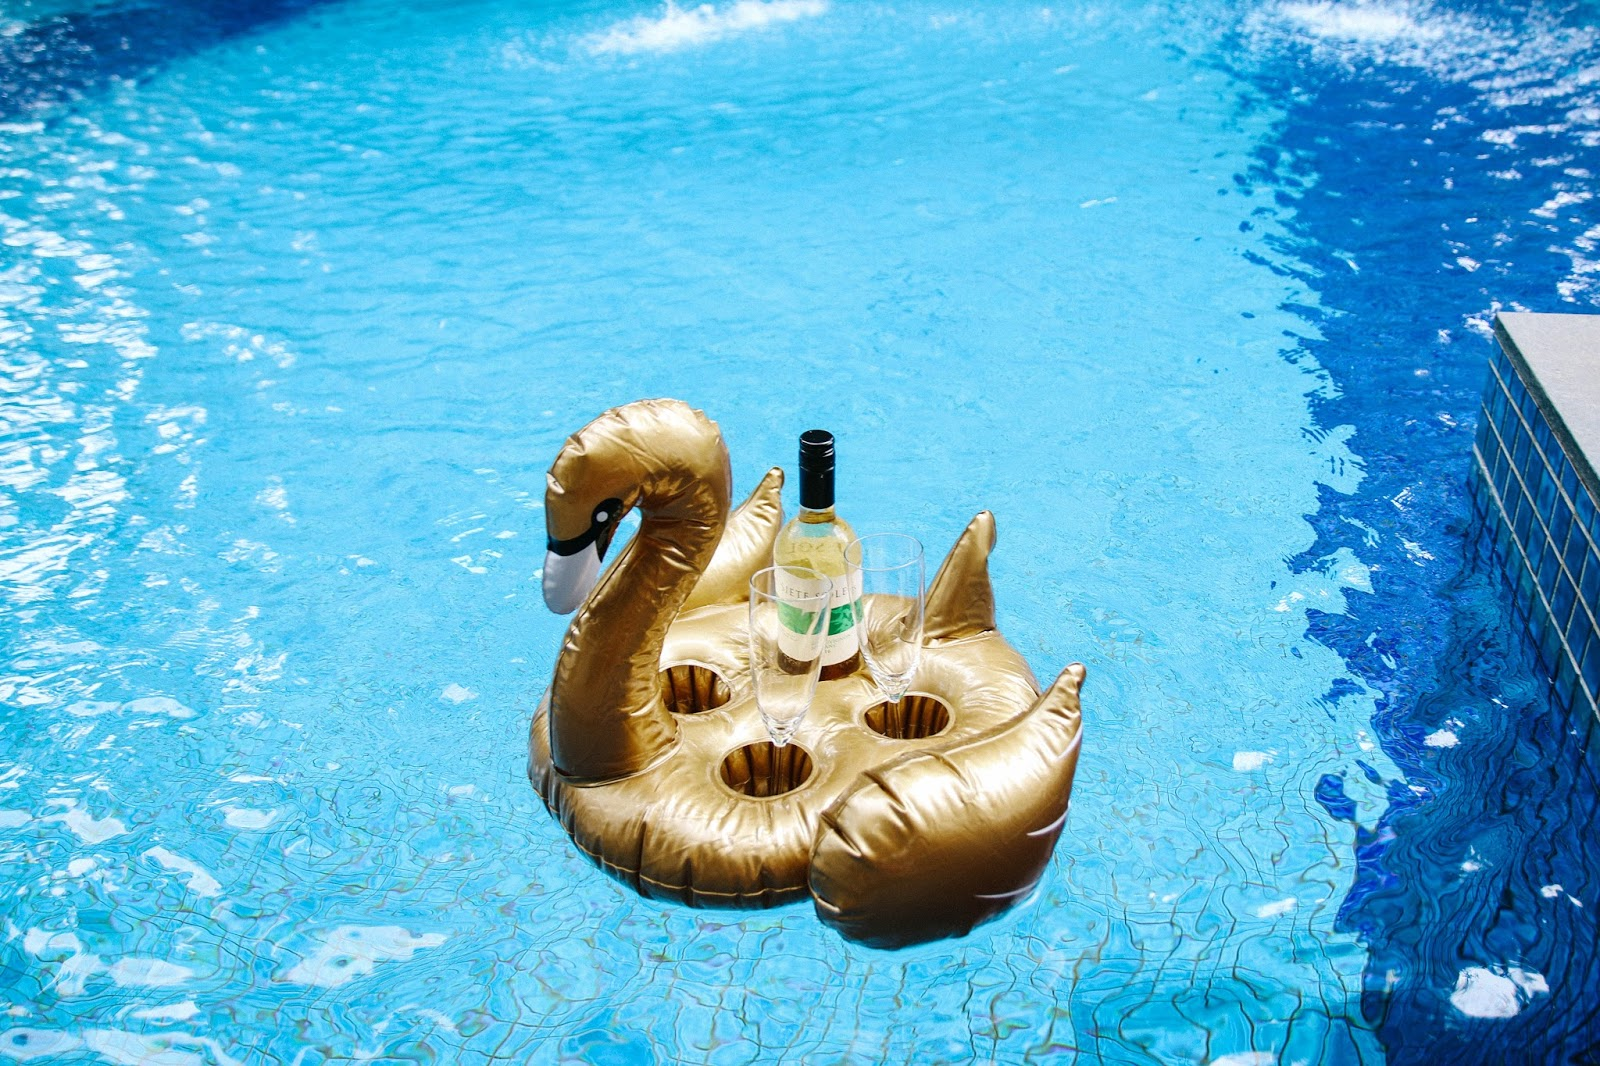 Gold Swan Floatie Drink Holder to hold our wine | GlobalFashionGal by Brianna Degaston